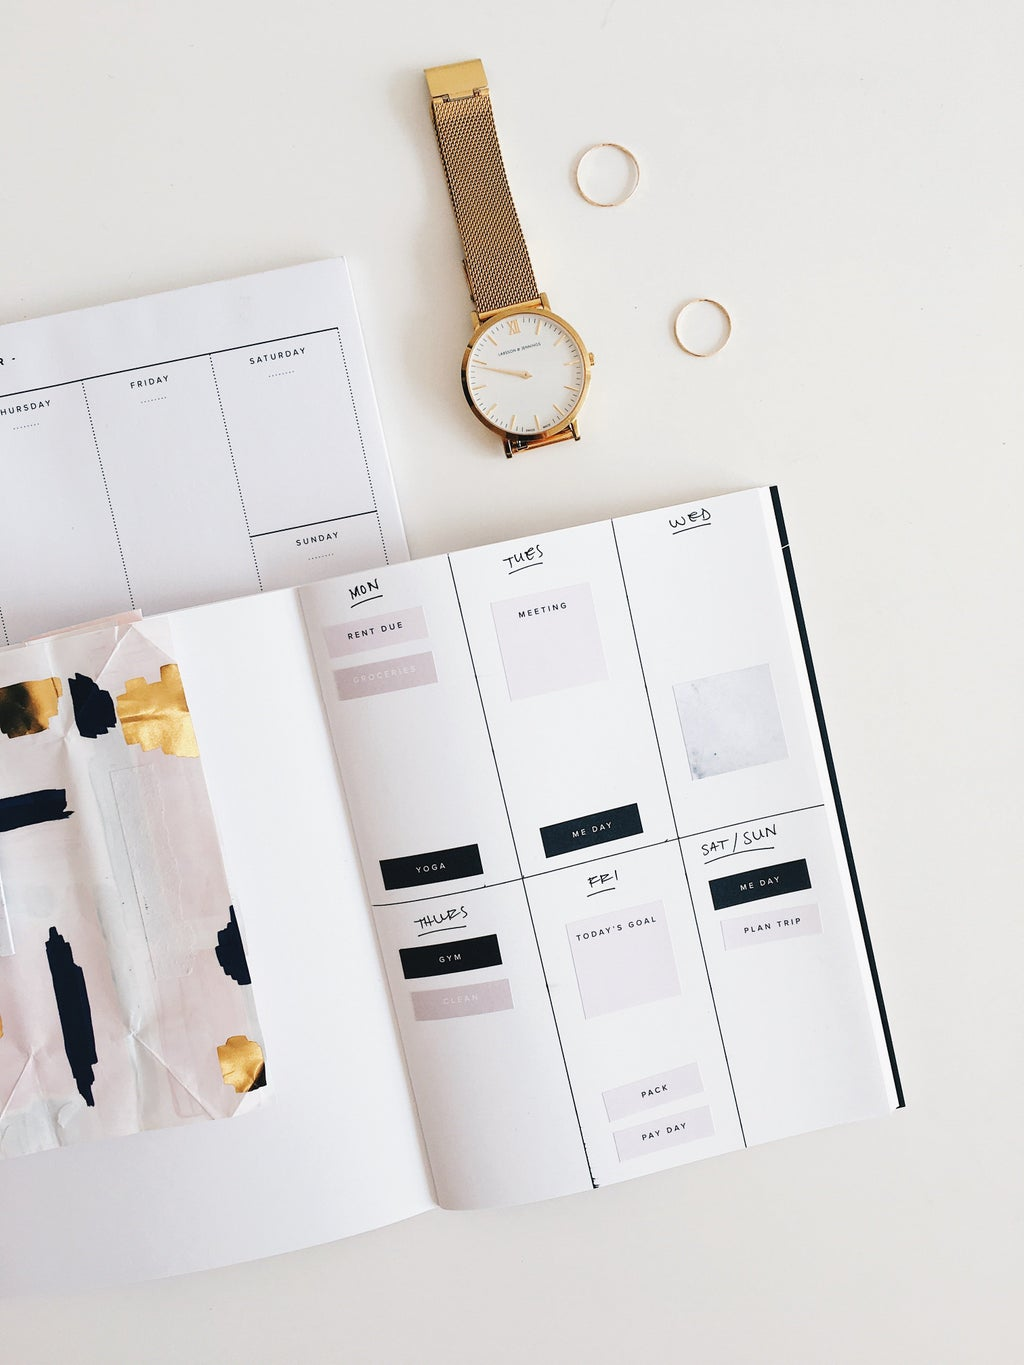 Image of a planner